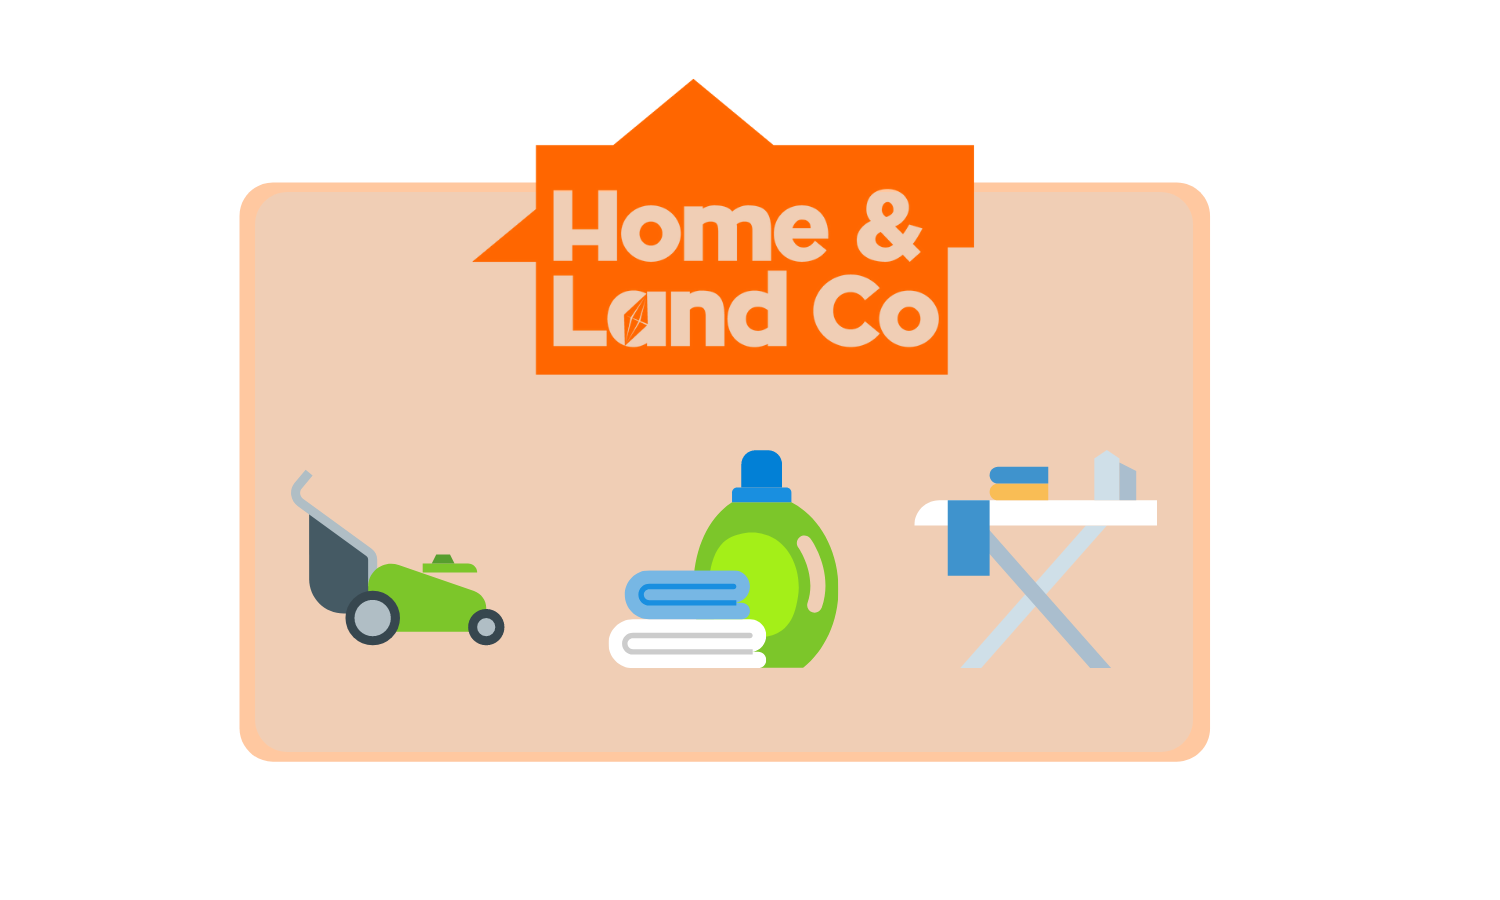 (Public) Home and Land Company